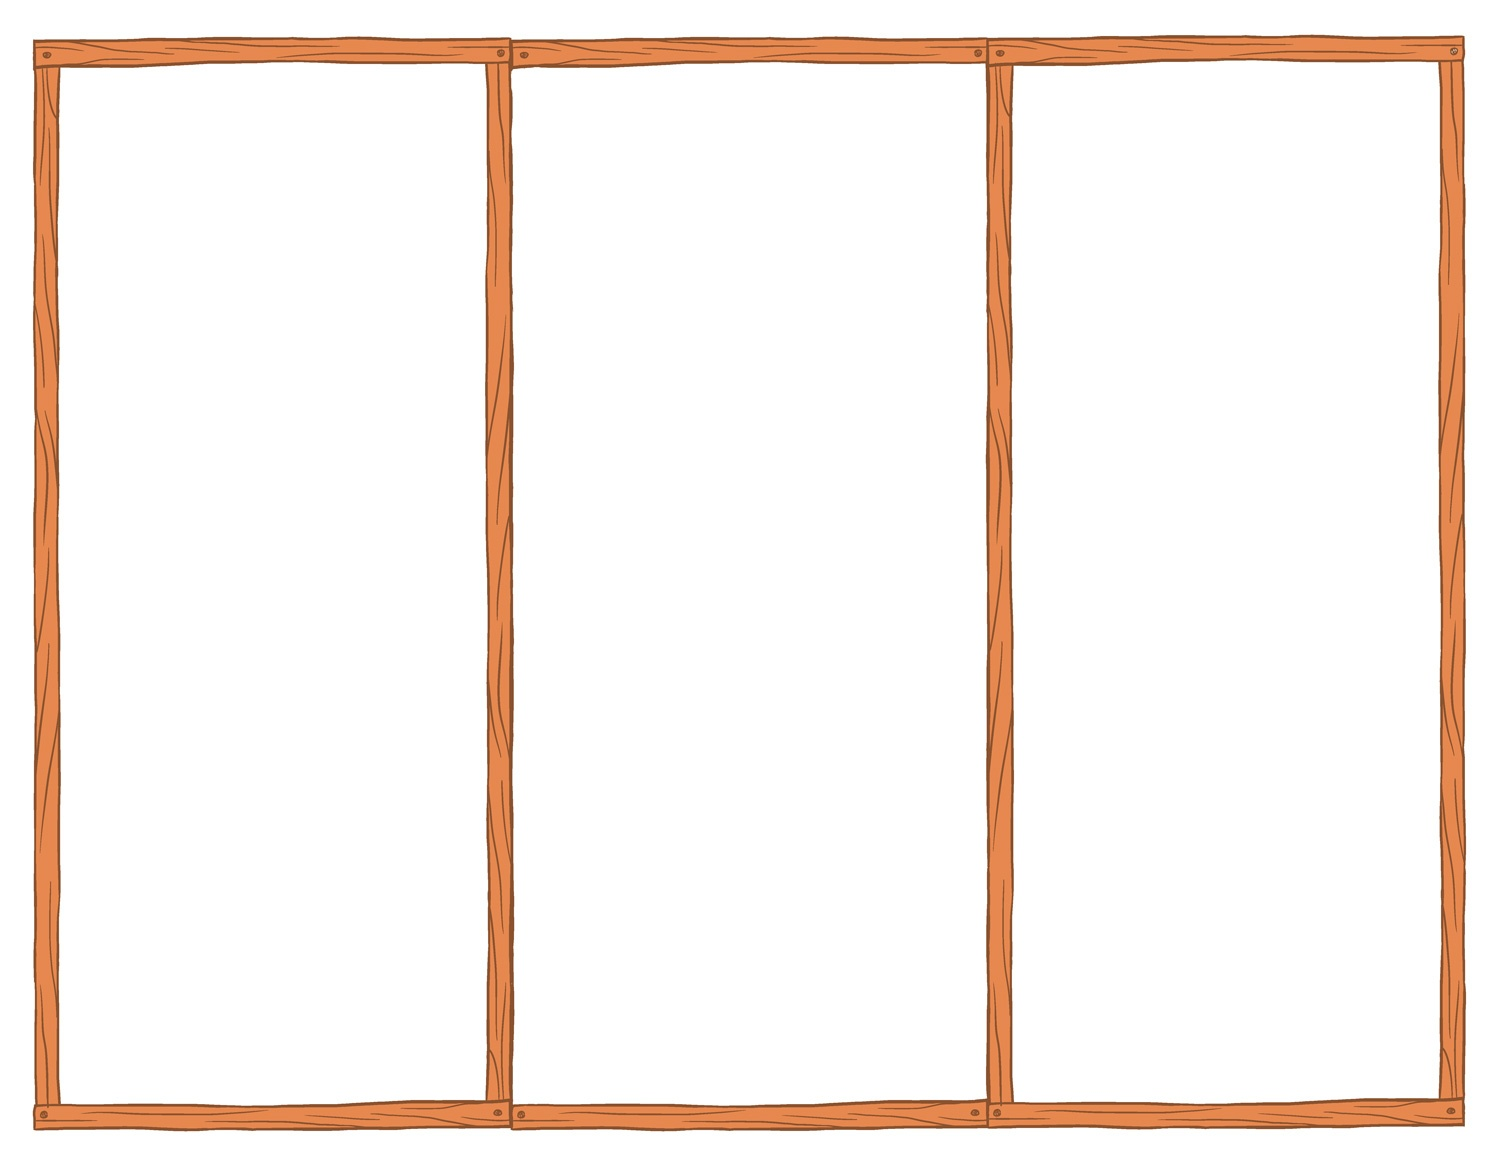 Blank Brochure Templates For Kids - Kaza.psstech.co - Free Printable Brochure Templates